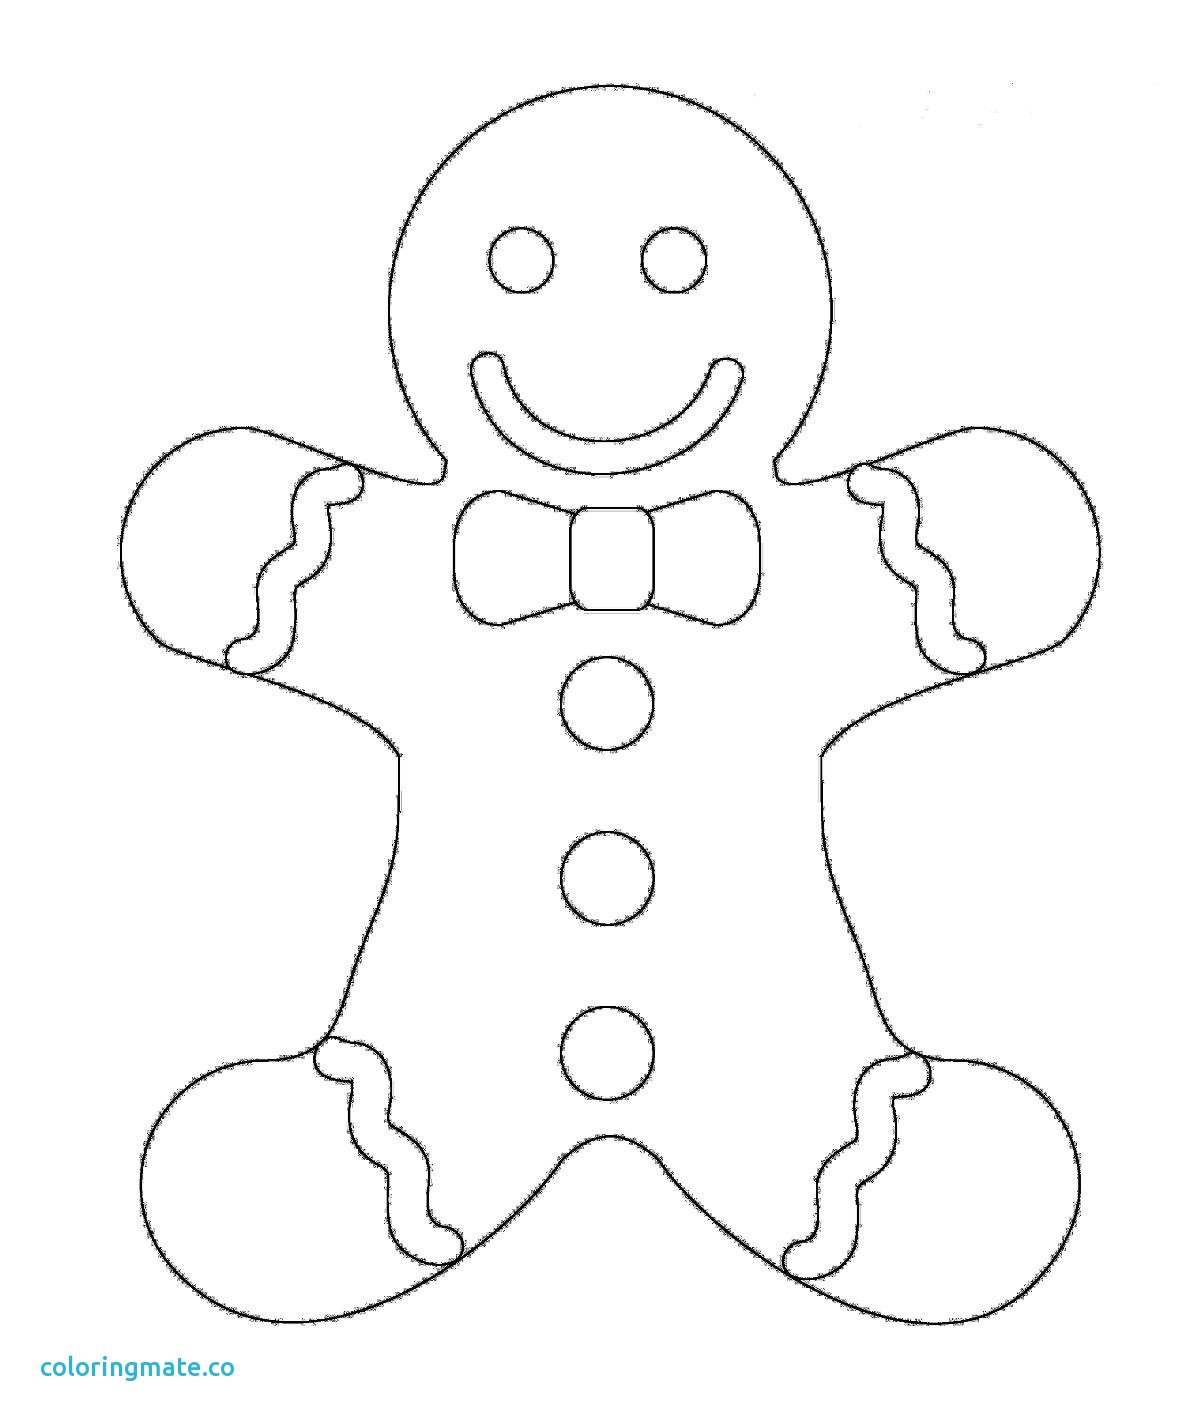 1200x1424 Gingerbread Man Coloring Page Luxury Adorable Colouring Sheet